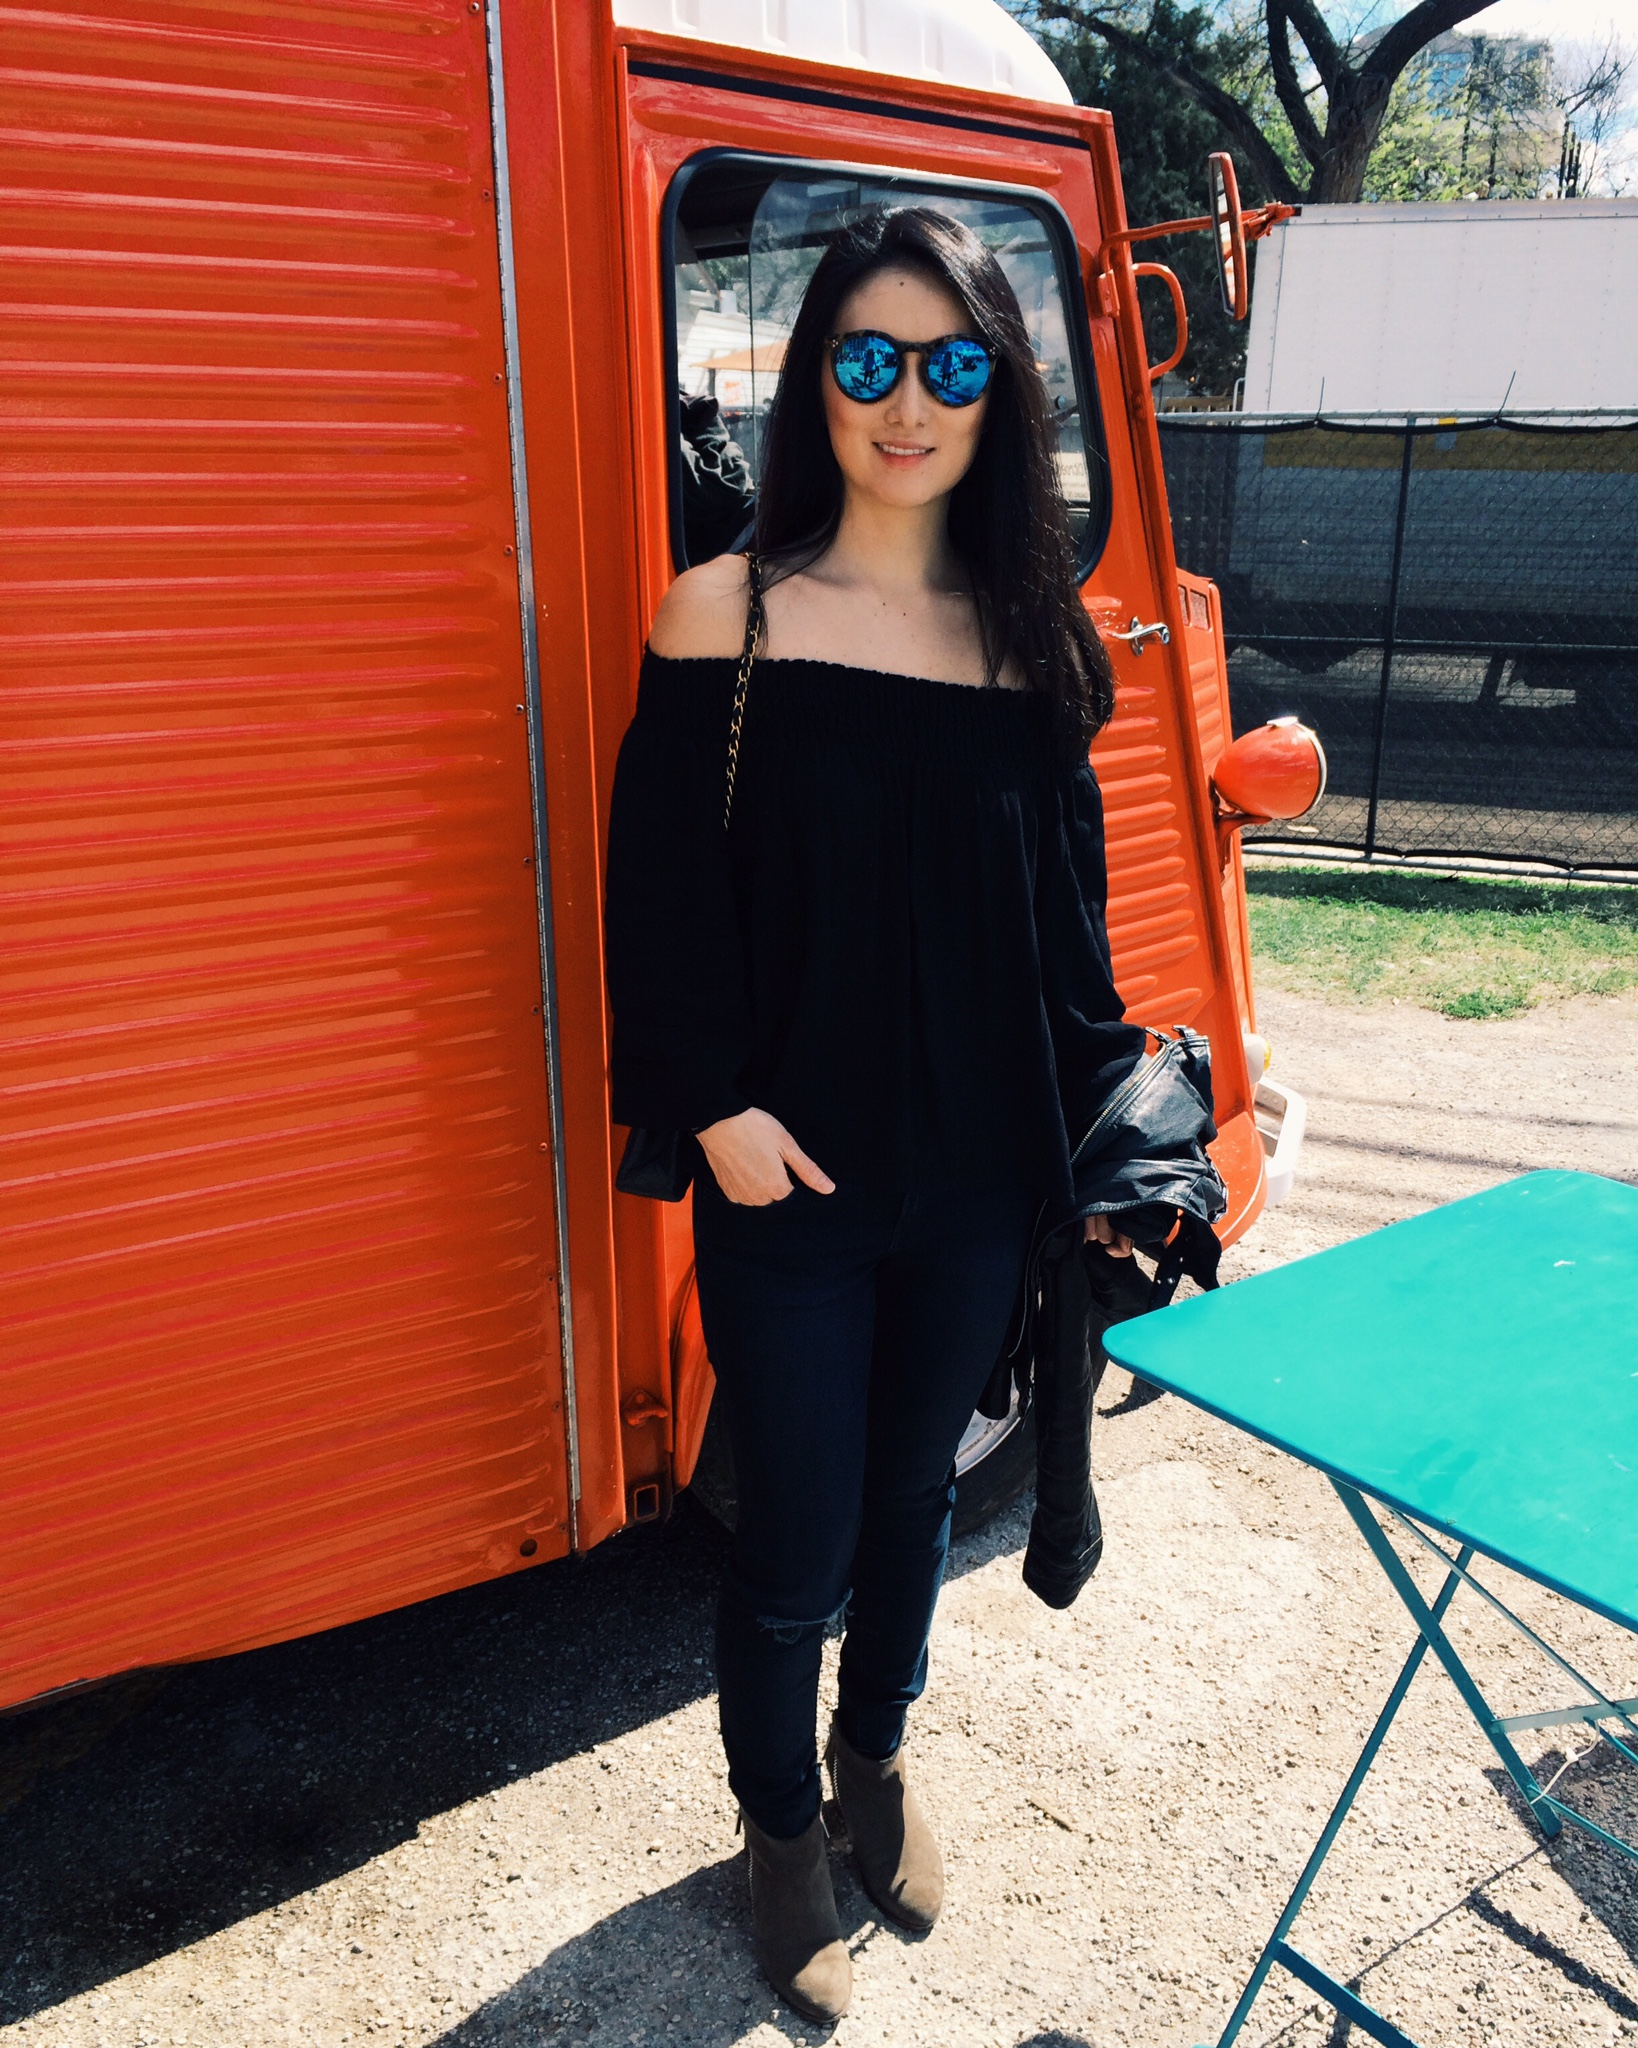 Raquel Greer Gordian shows an image of Grace Yoon's mirrored sunglasses, off-the-shoulder top, jeans, leather moto jacket, and booties for SXSW.